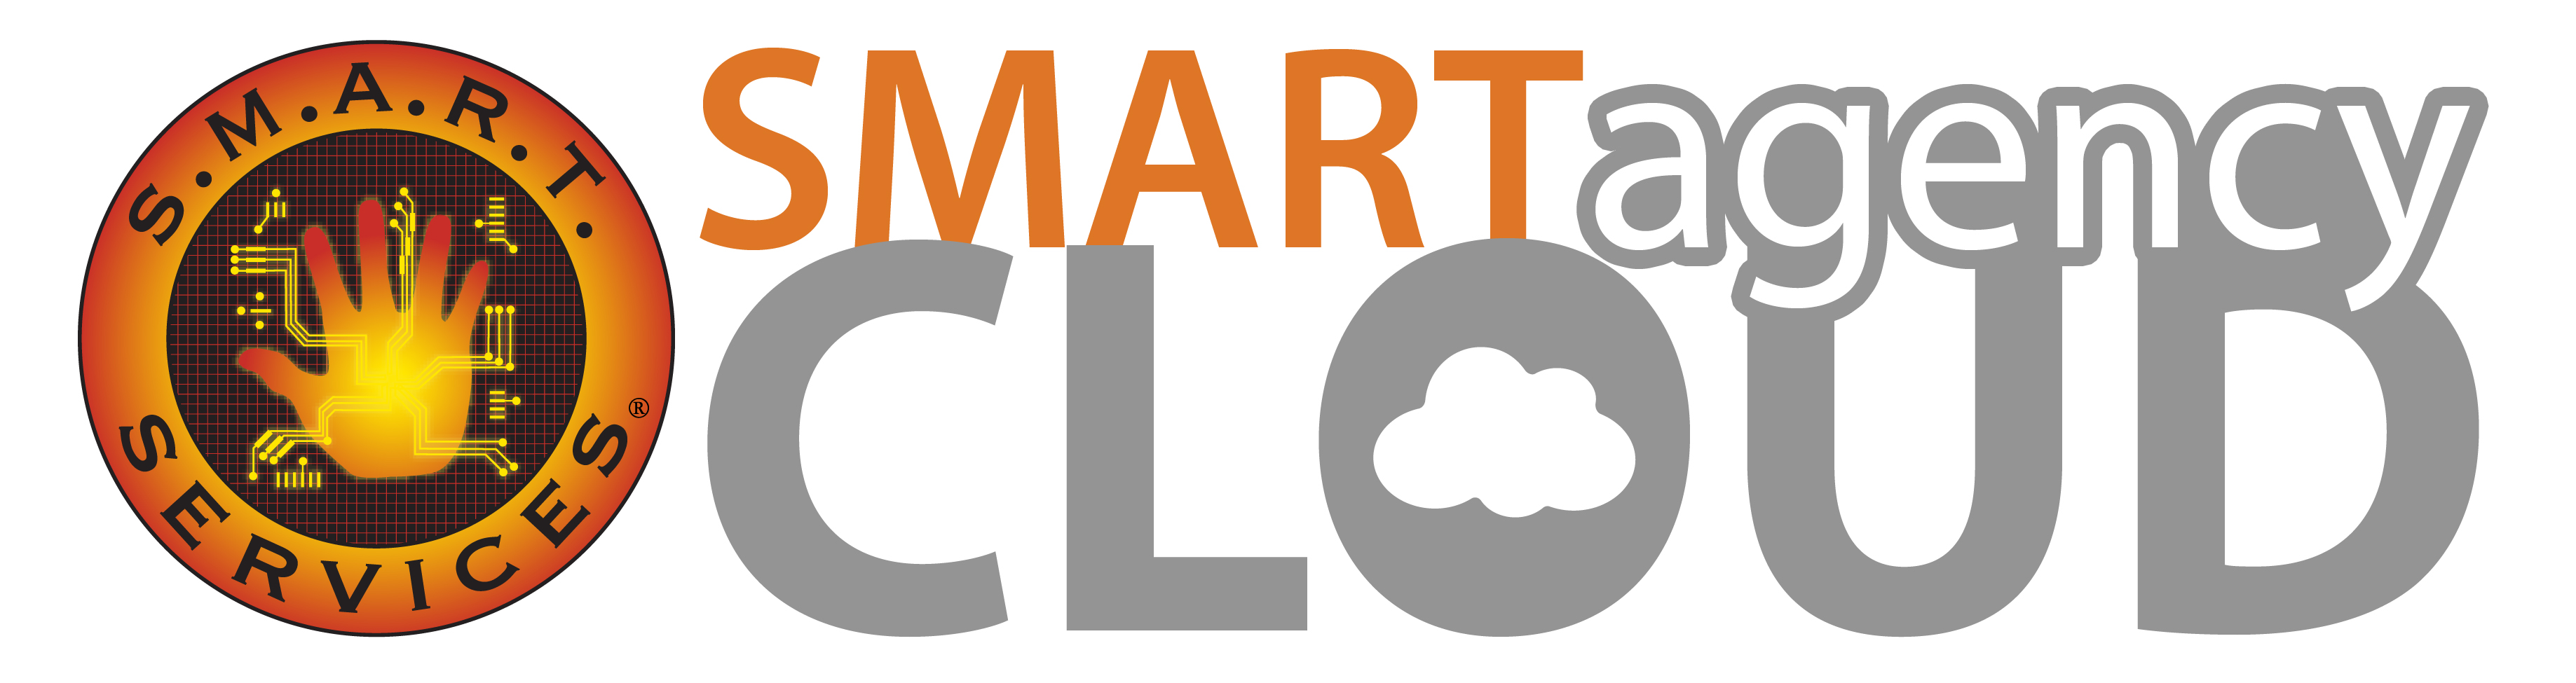 SMARTagency Cloud logo